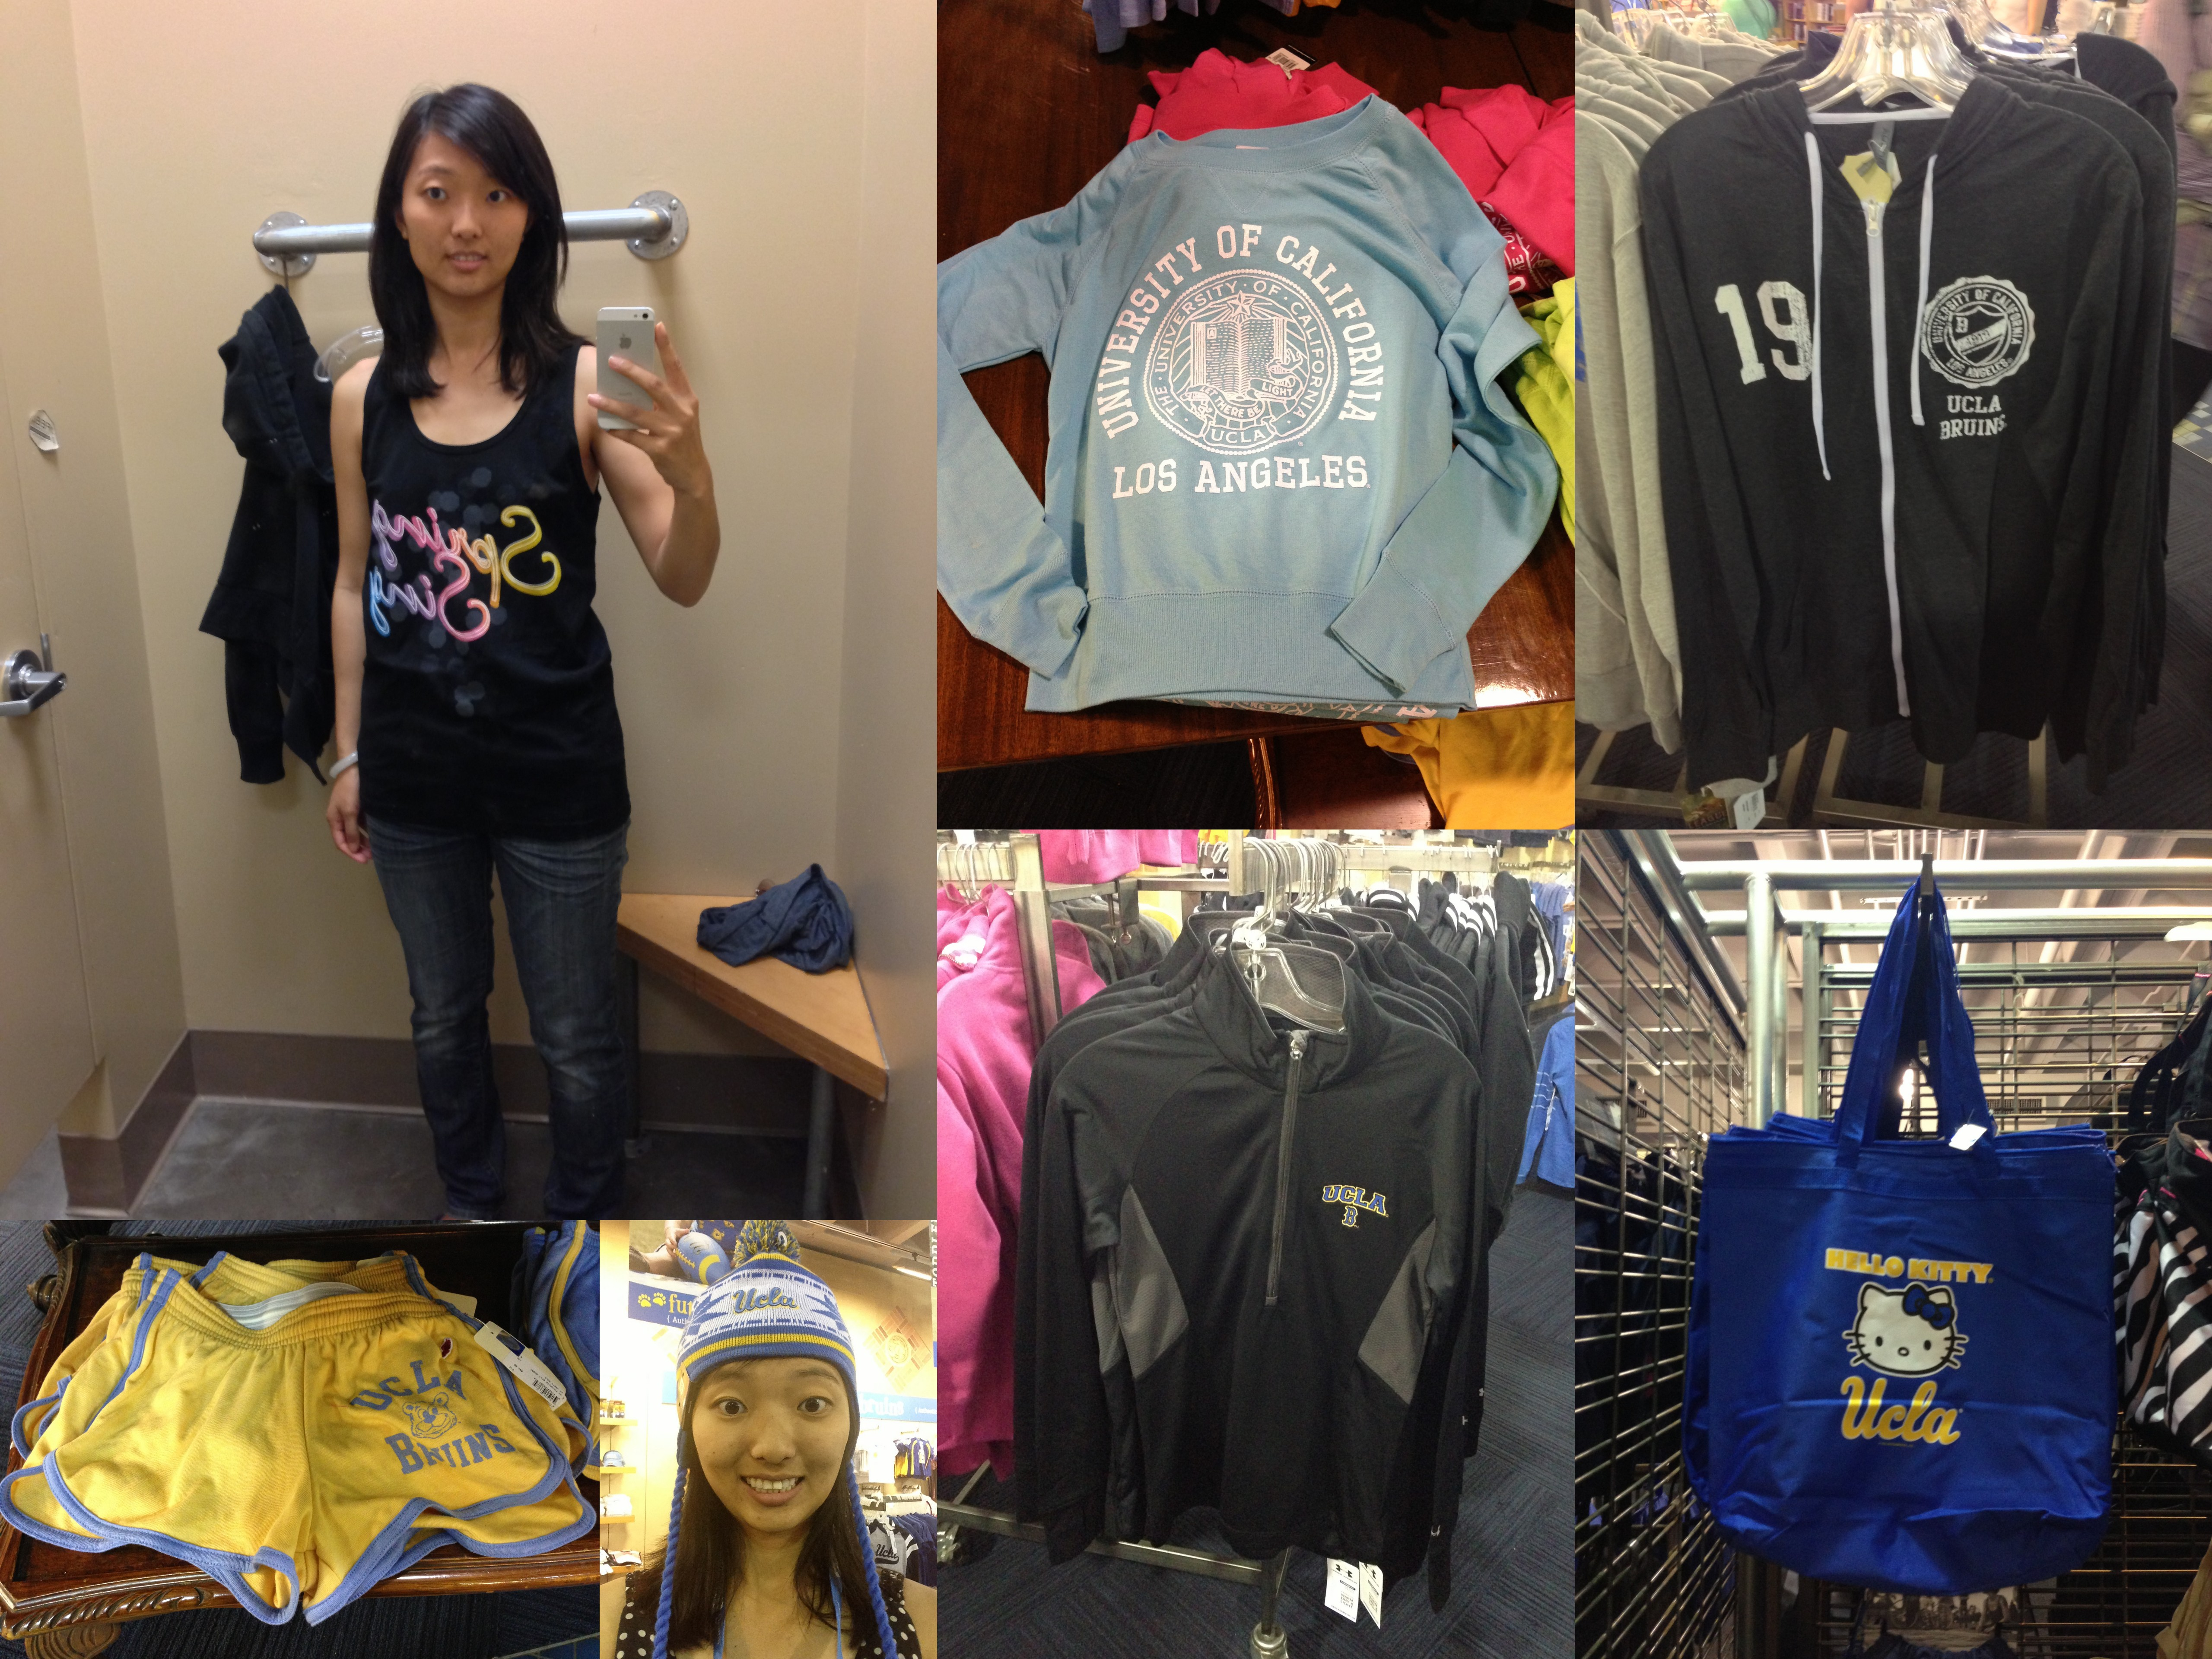 Staffed by friendly and knowledgeable students, browse the UCLA Store's huge inventory of UCLA-themed memorabilia, gifts, and clothing, as well as computer